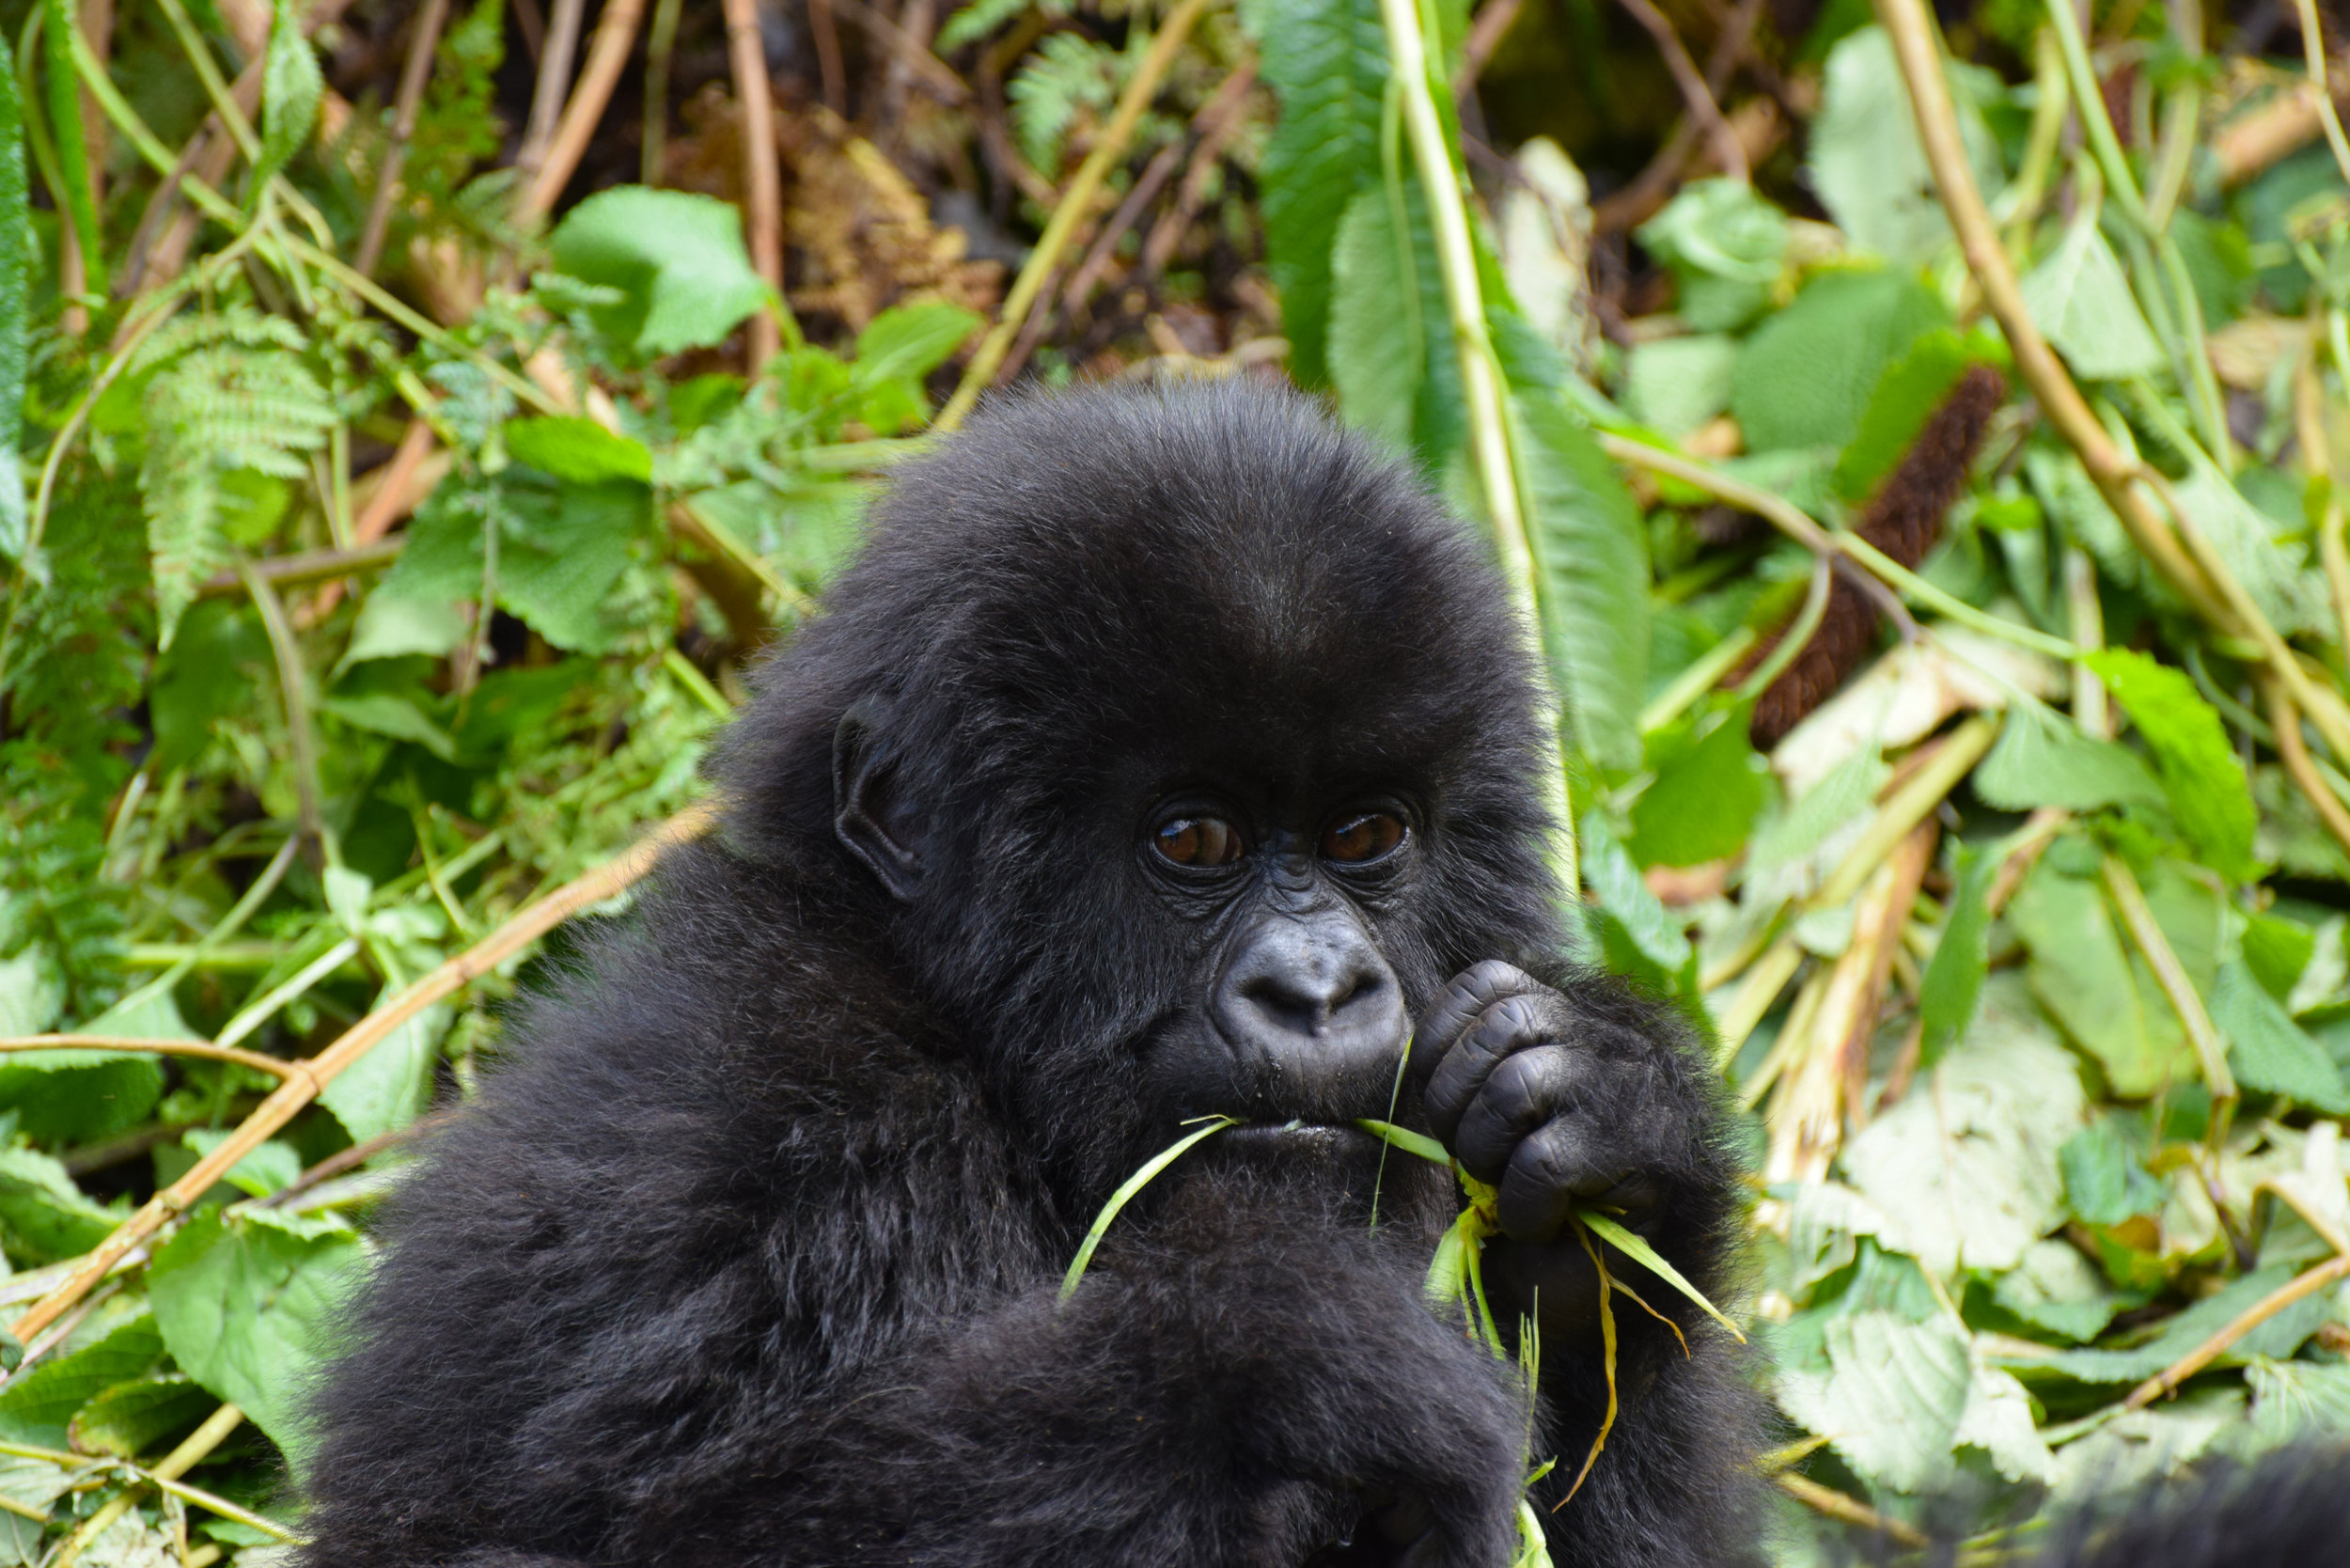 Trek with Gorillas in Volcano National Park - Tiny but mighty, Rwanda is often referred to as the beating heart of Africa and it's easy to see why. Thanks to its location just a few degrees below the equator, the lush and mountainous countryside is home to populations of endangered mountain gorilla and golden monkeys in the world-renowned Volcanoes National Park.